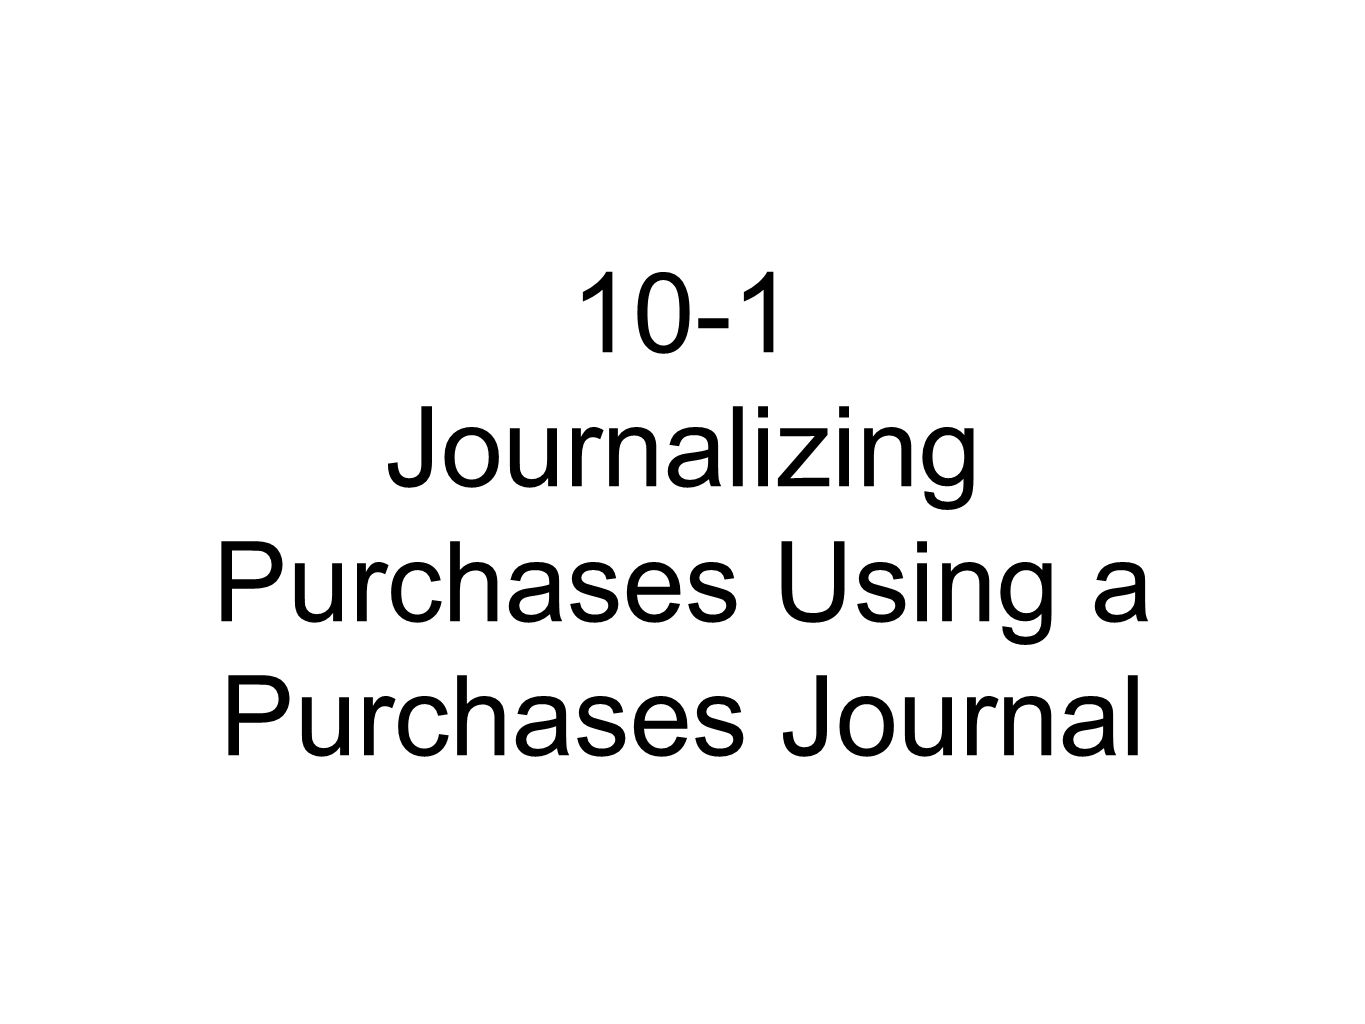 10-1 Journalizing Purchases Using a Purchases Journal